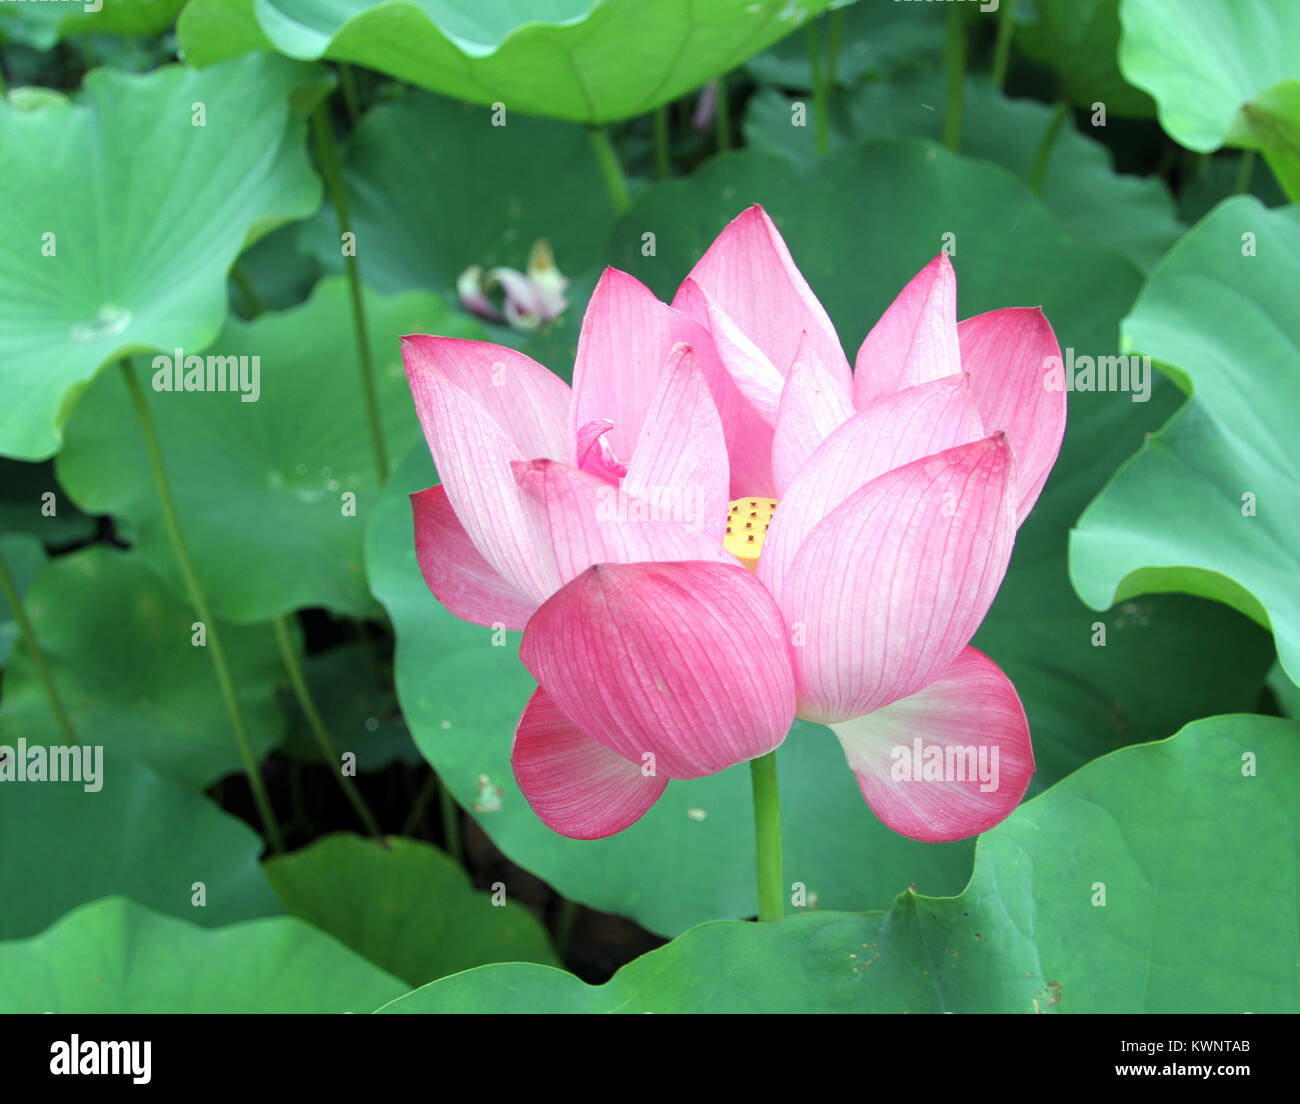 Big lotus leaf in pond stock photos big lotus leaf in pond stock pink lotus and big green leaves in pond stock image mightylinksfo